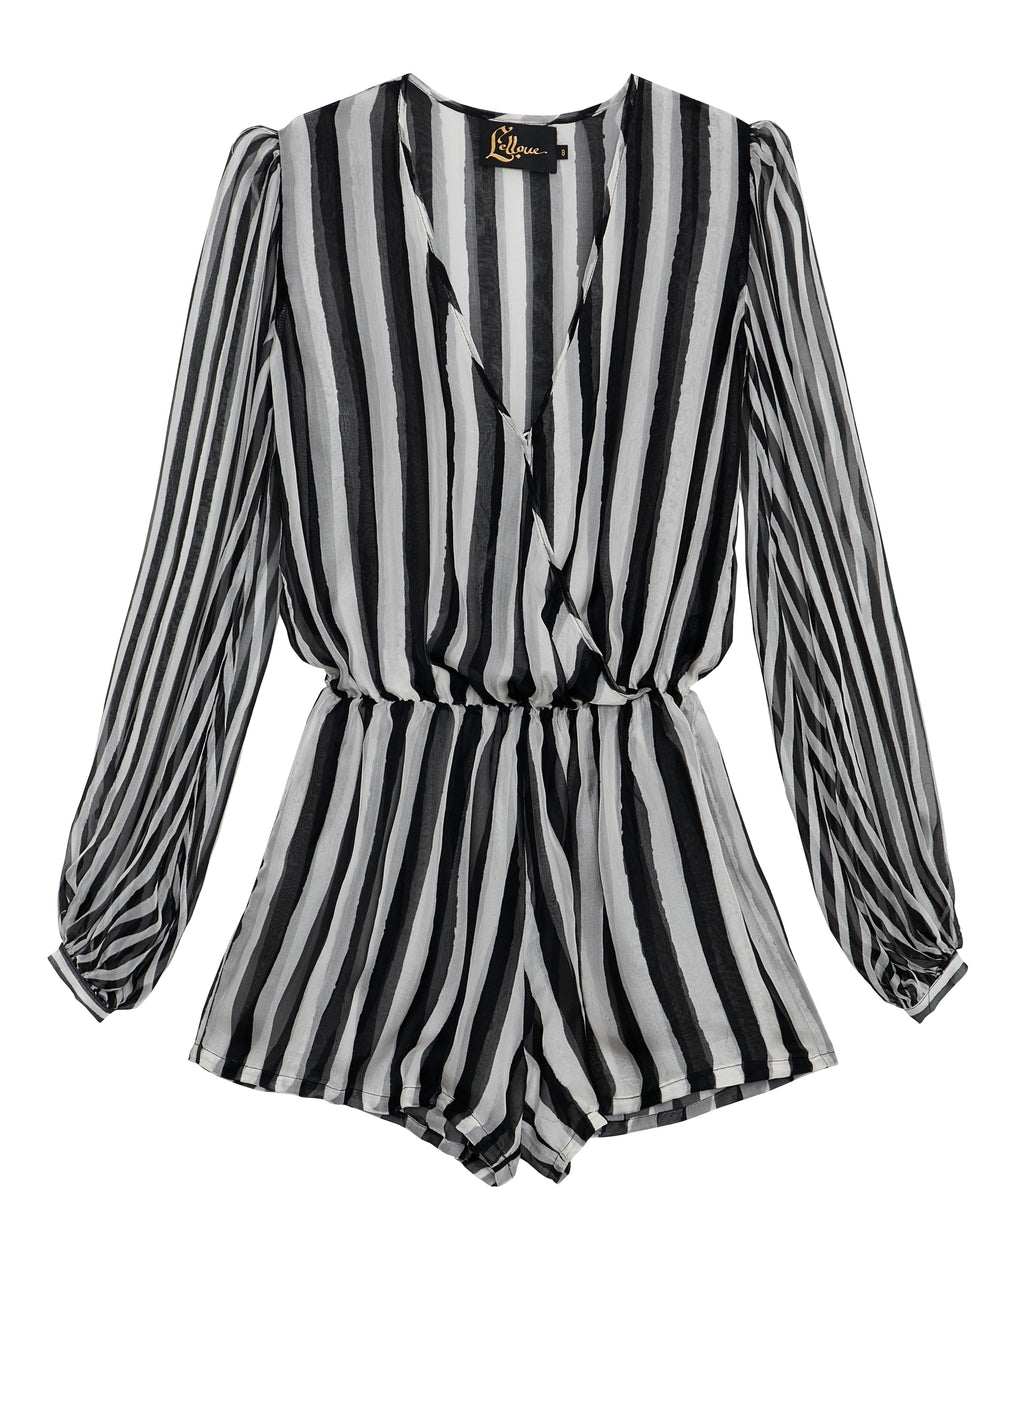 BW STRIPES Puff Sleeve Playsuit